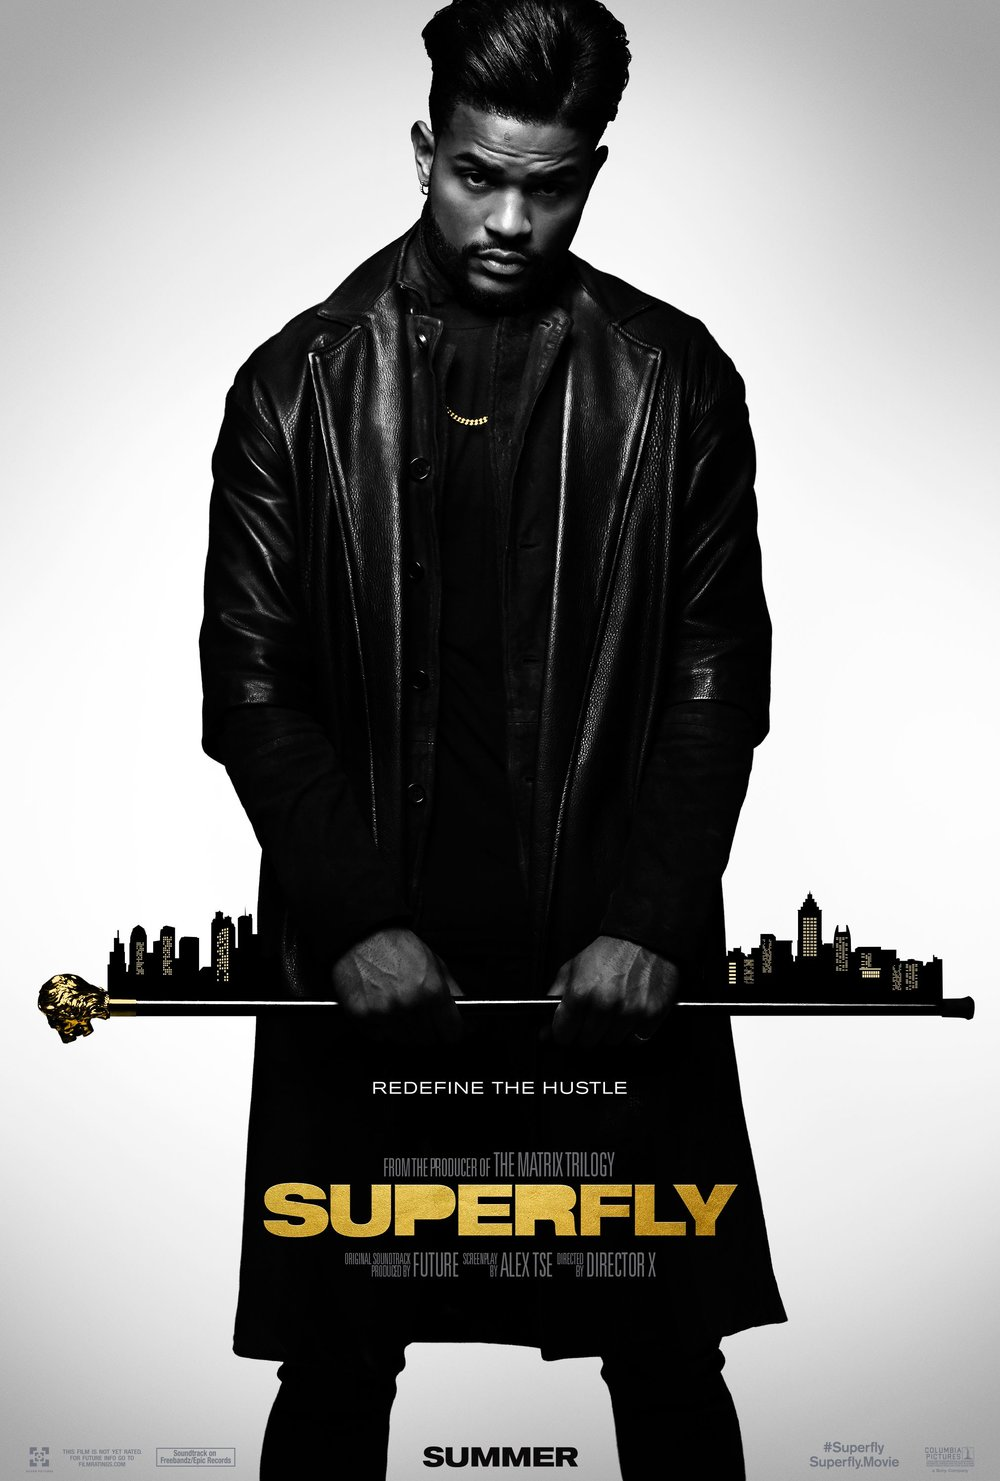 slick-new-trailer-for-superfly-all-hustle-no-shame1